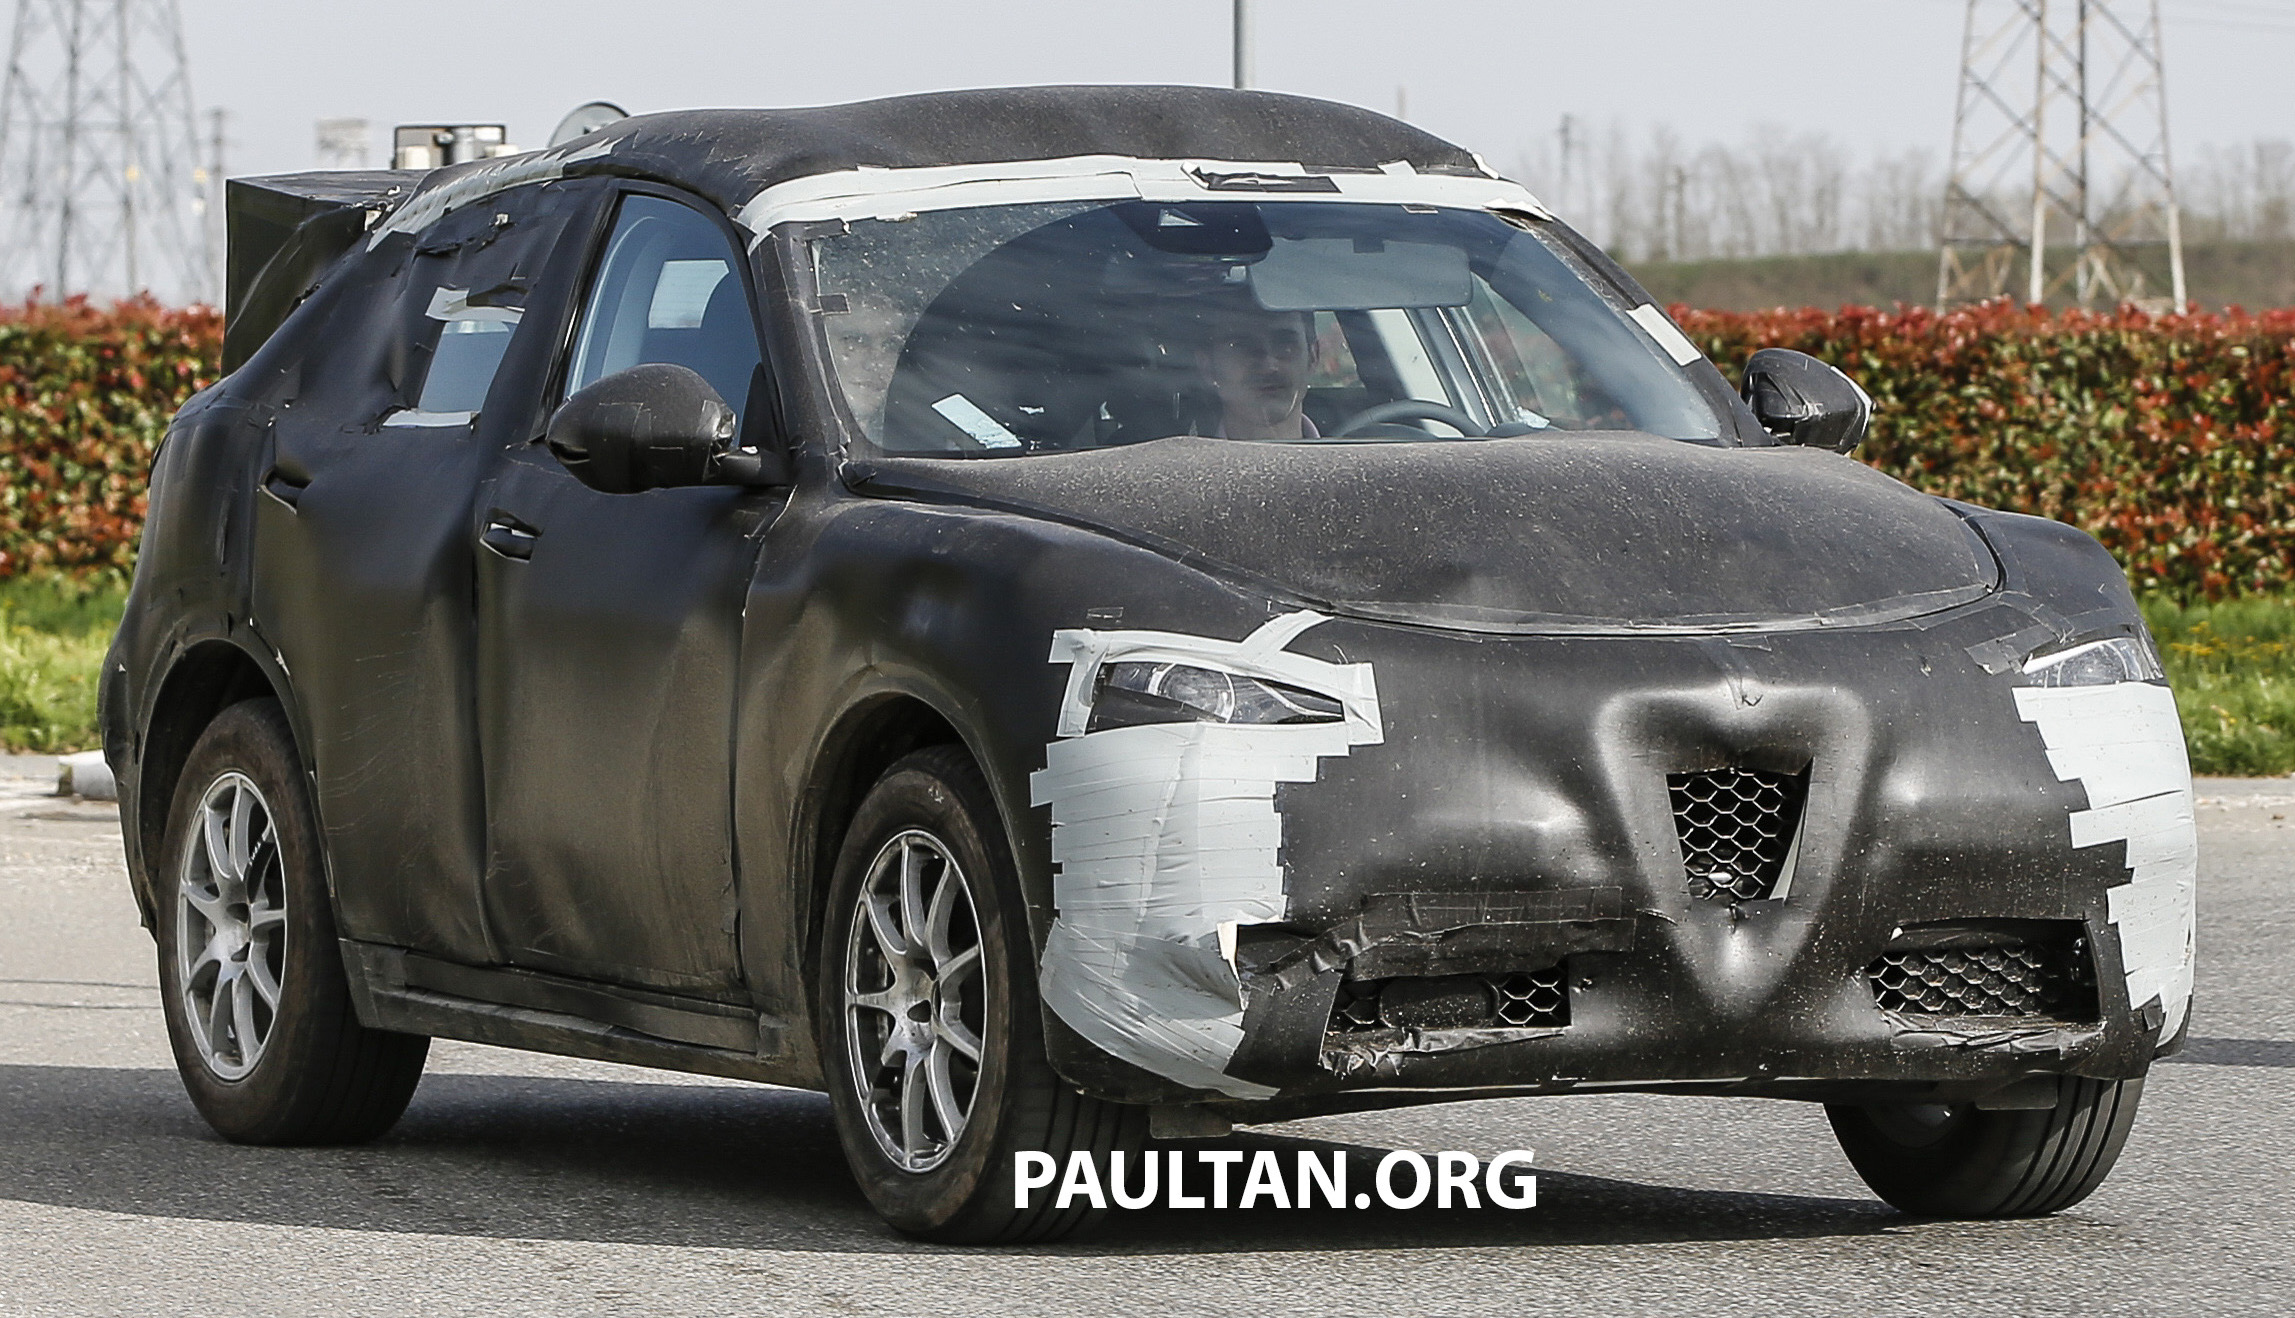 spied alfa romeo stelvio suv shows exterior shape. Black Bedroom Furniture Sets. Home Design Ideas